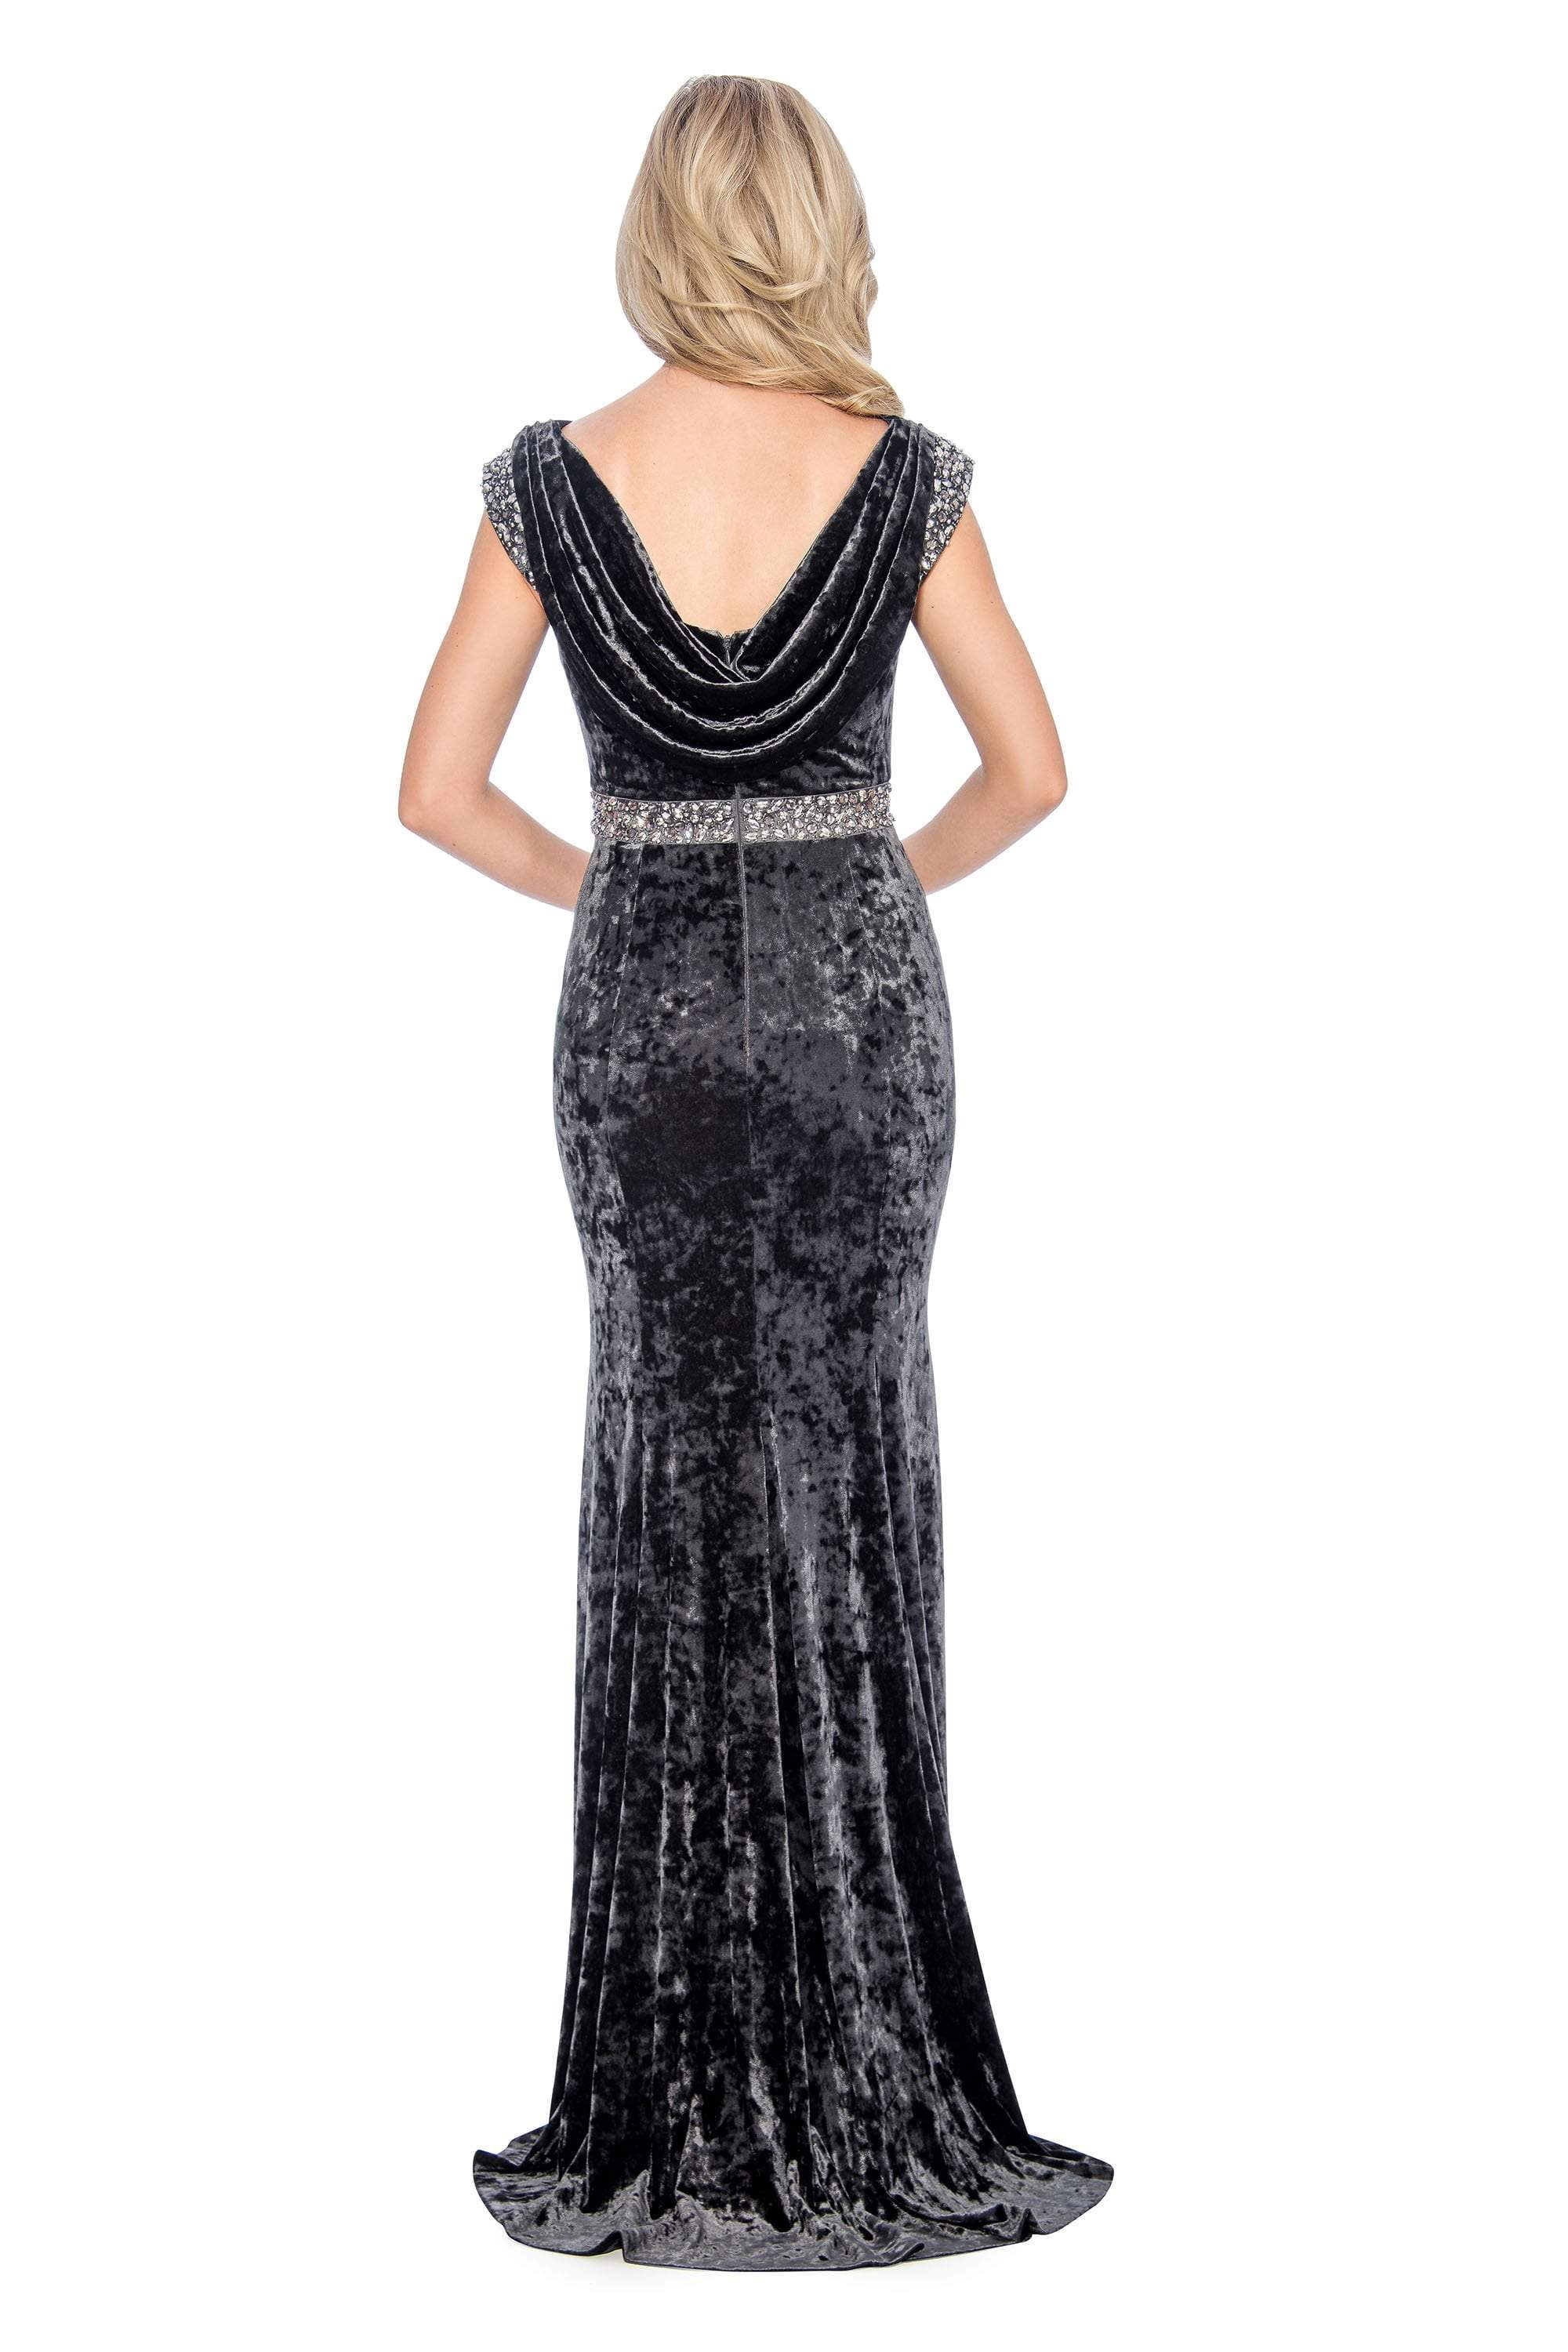 Decode 1.8 - 184290 Embellished Bateau Velvet Trumpet Dress In Gray